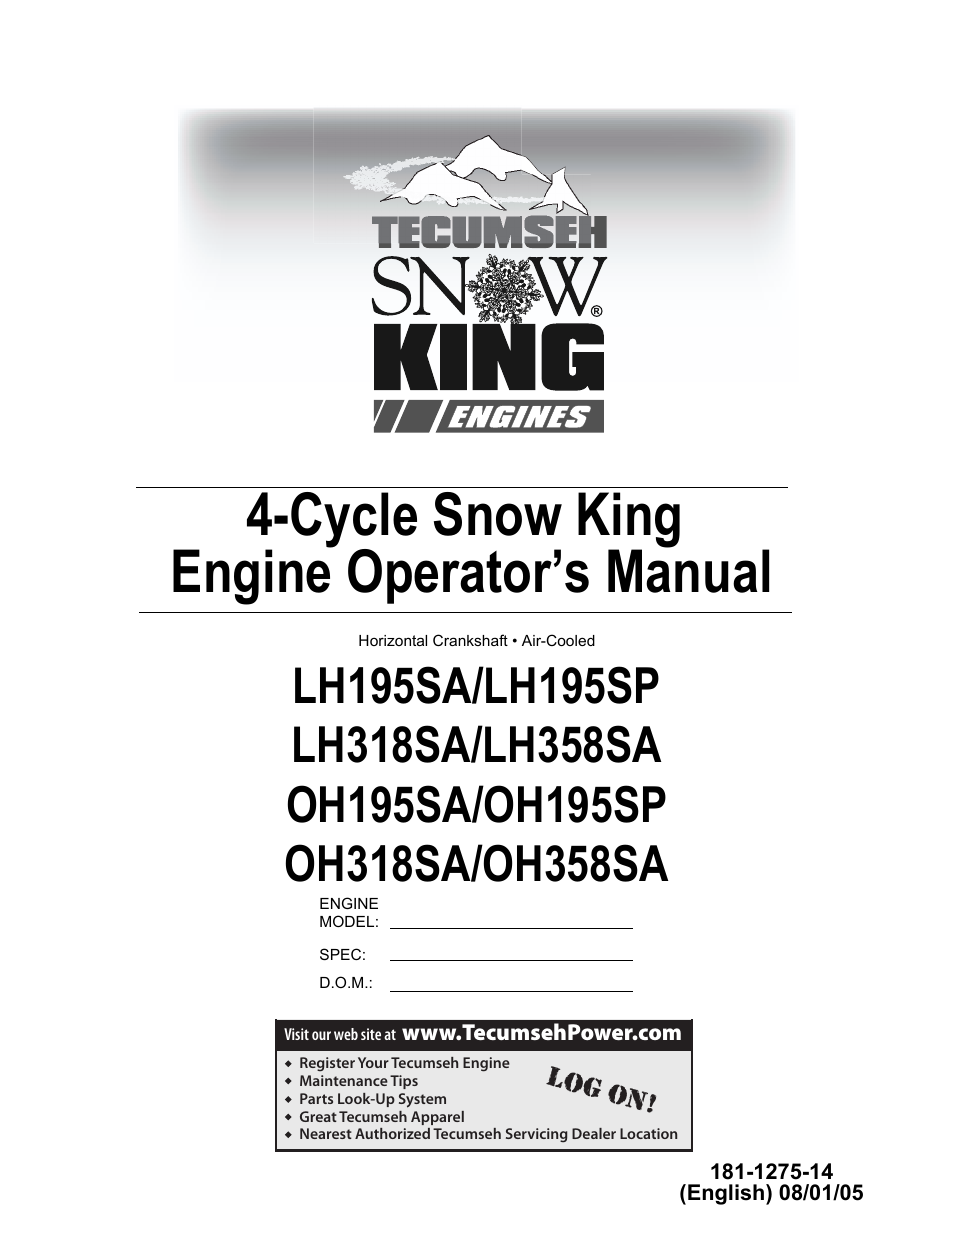 Tecumseh SNOW KING LH195SA User Manual | 32 pages | Also for: SNOW